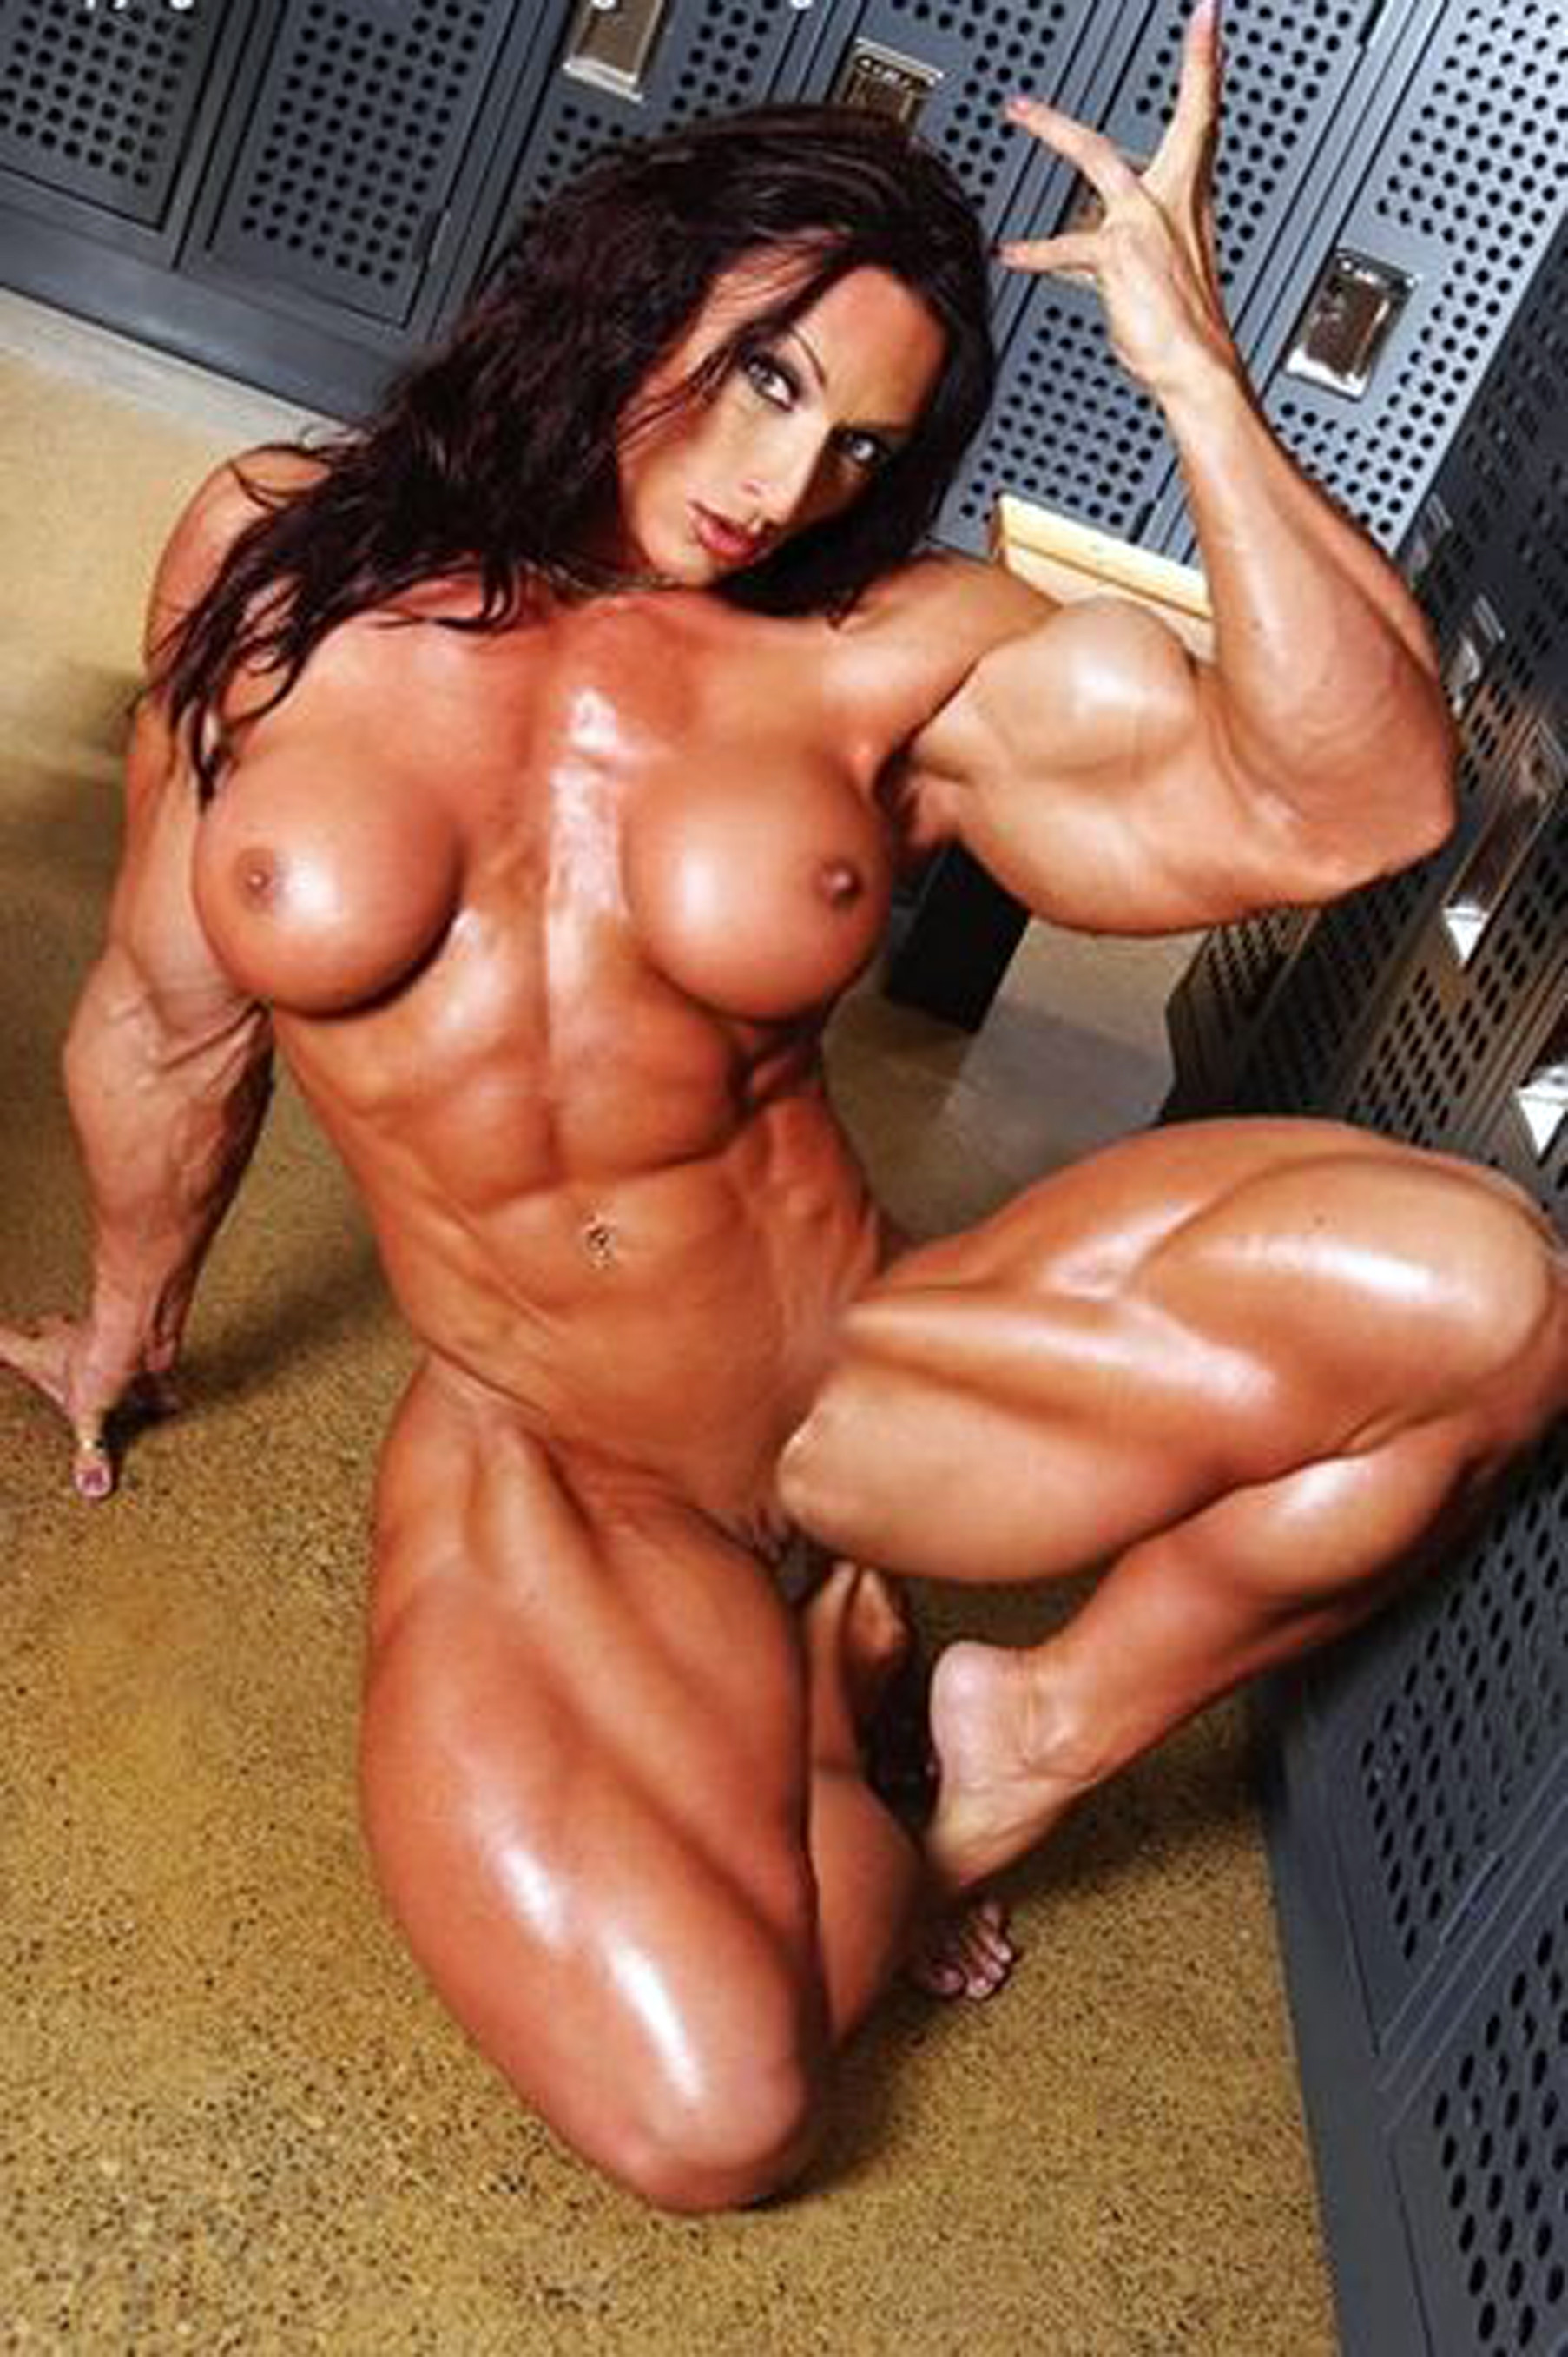 Free pictures of nude women bodybuilders